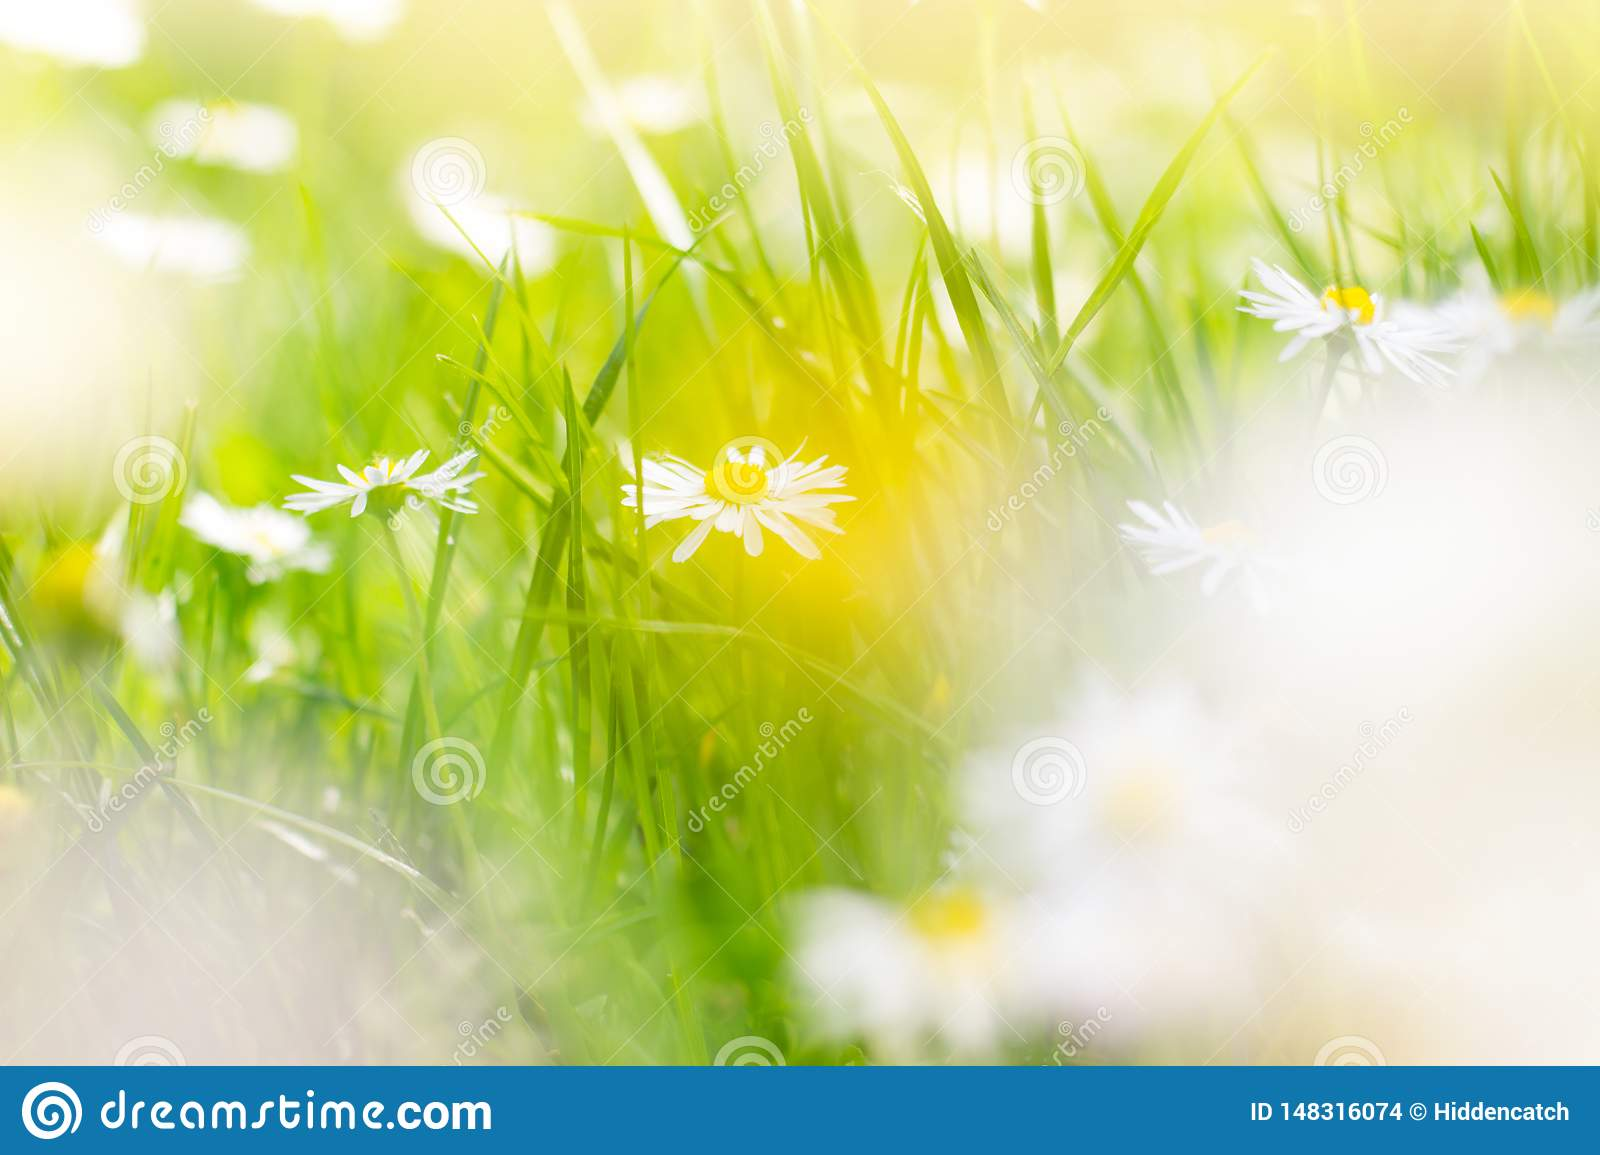 Sunny field of daisies; spring background